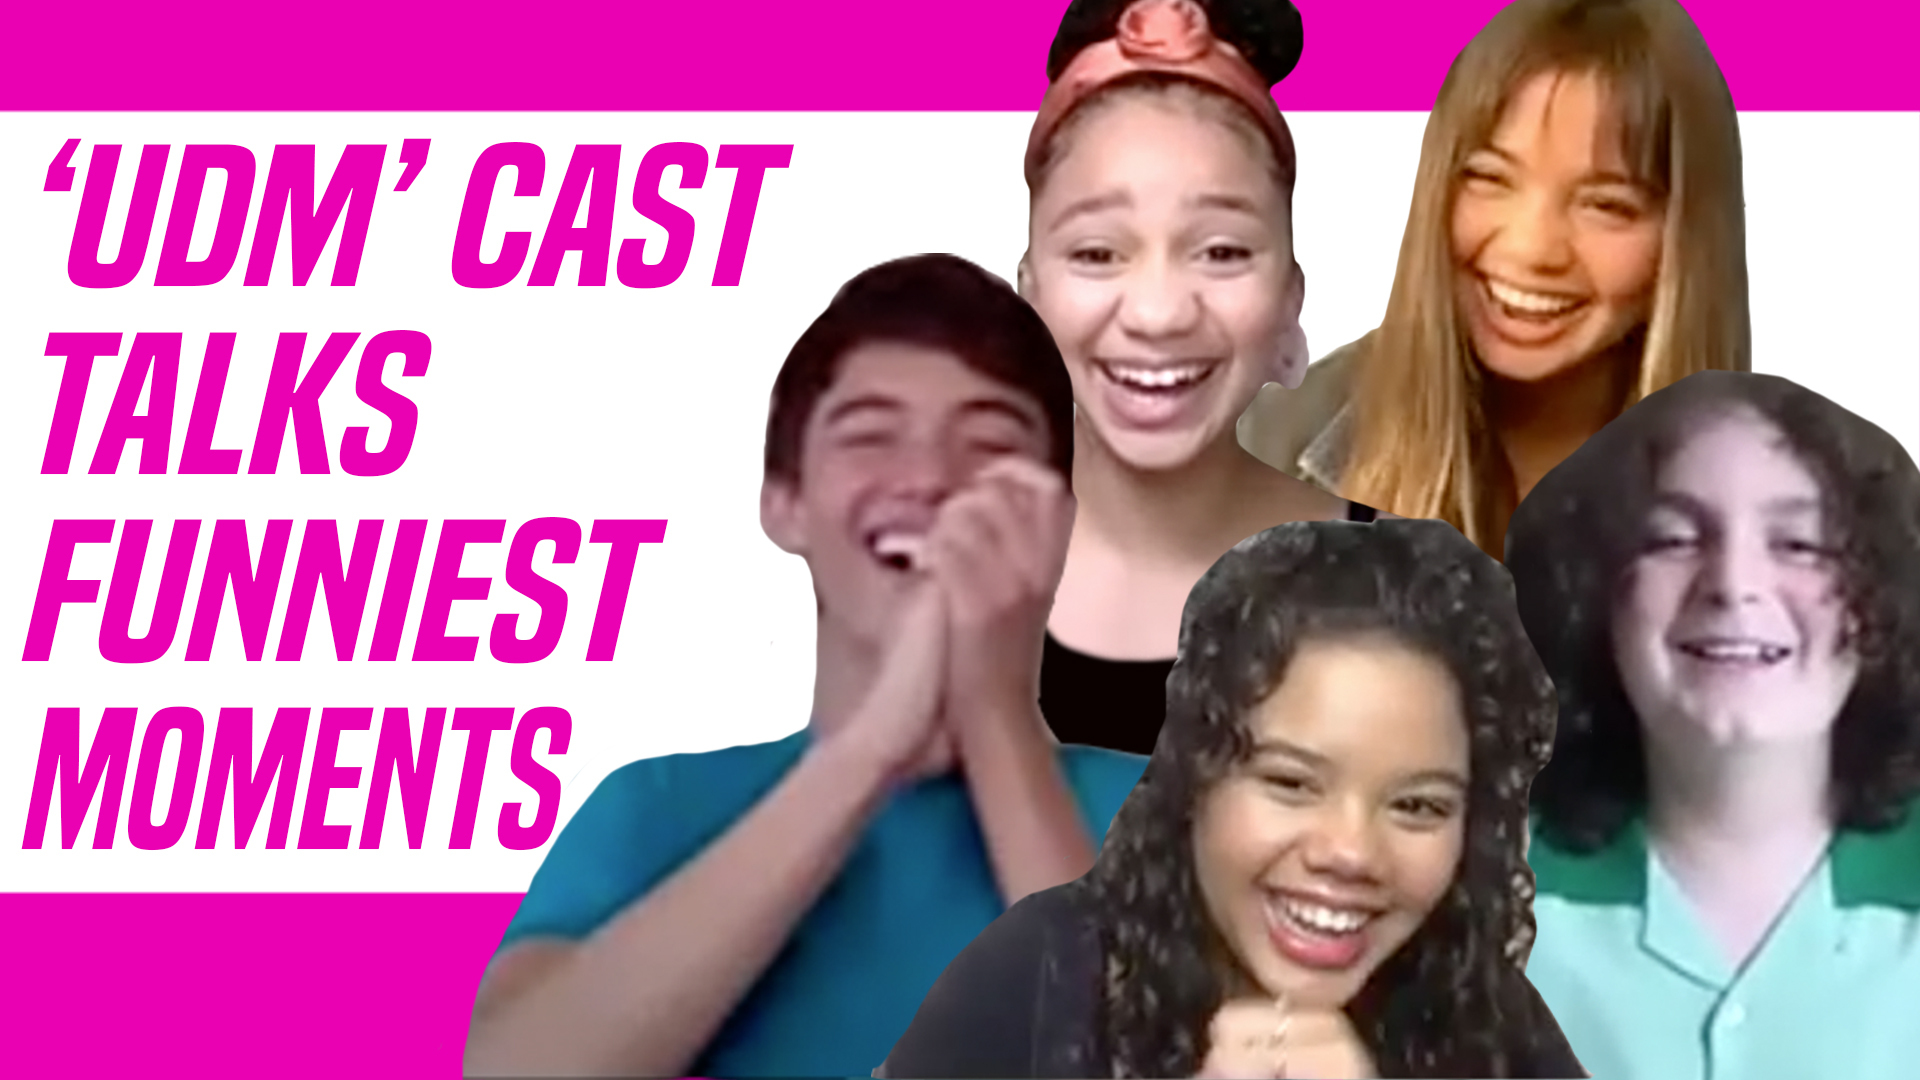 Upside Down Magic Casts Dishes On Funniest Moments On Set